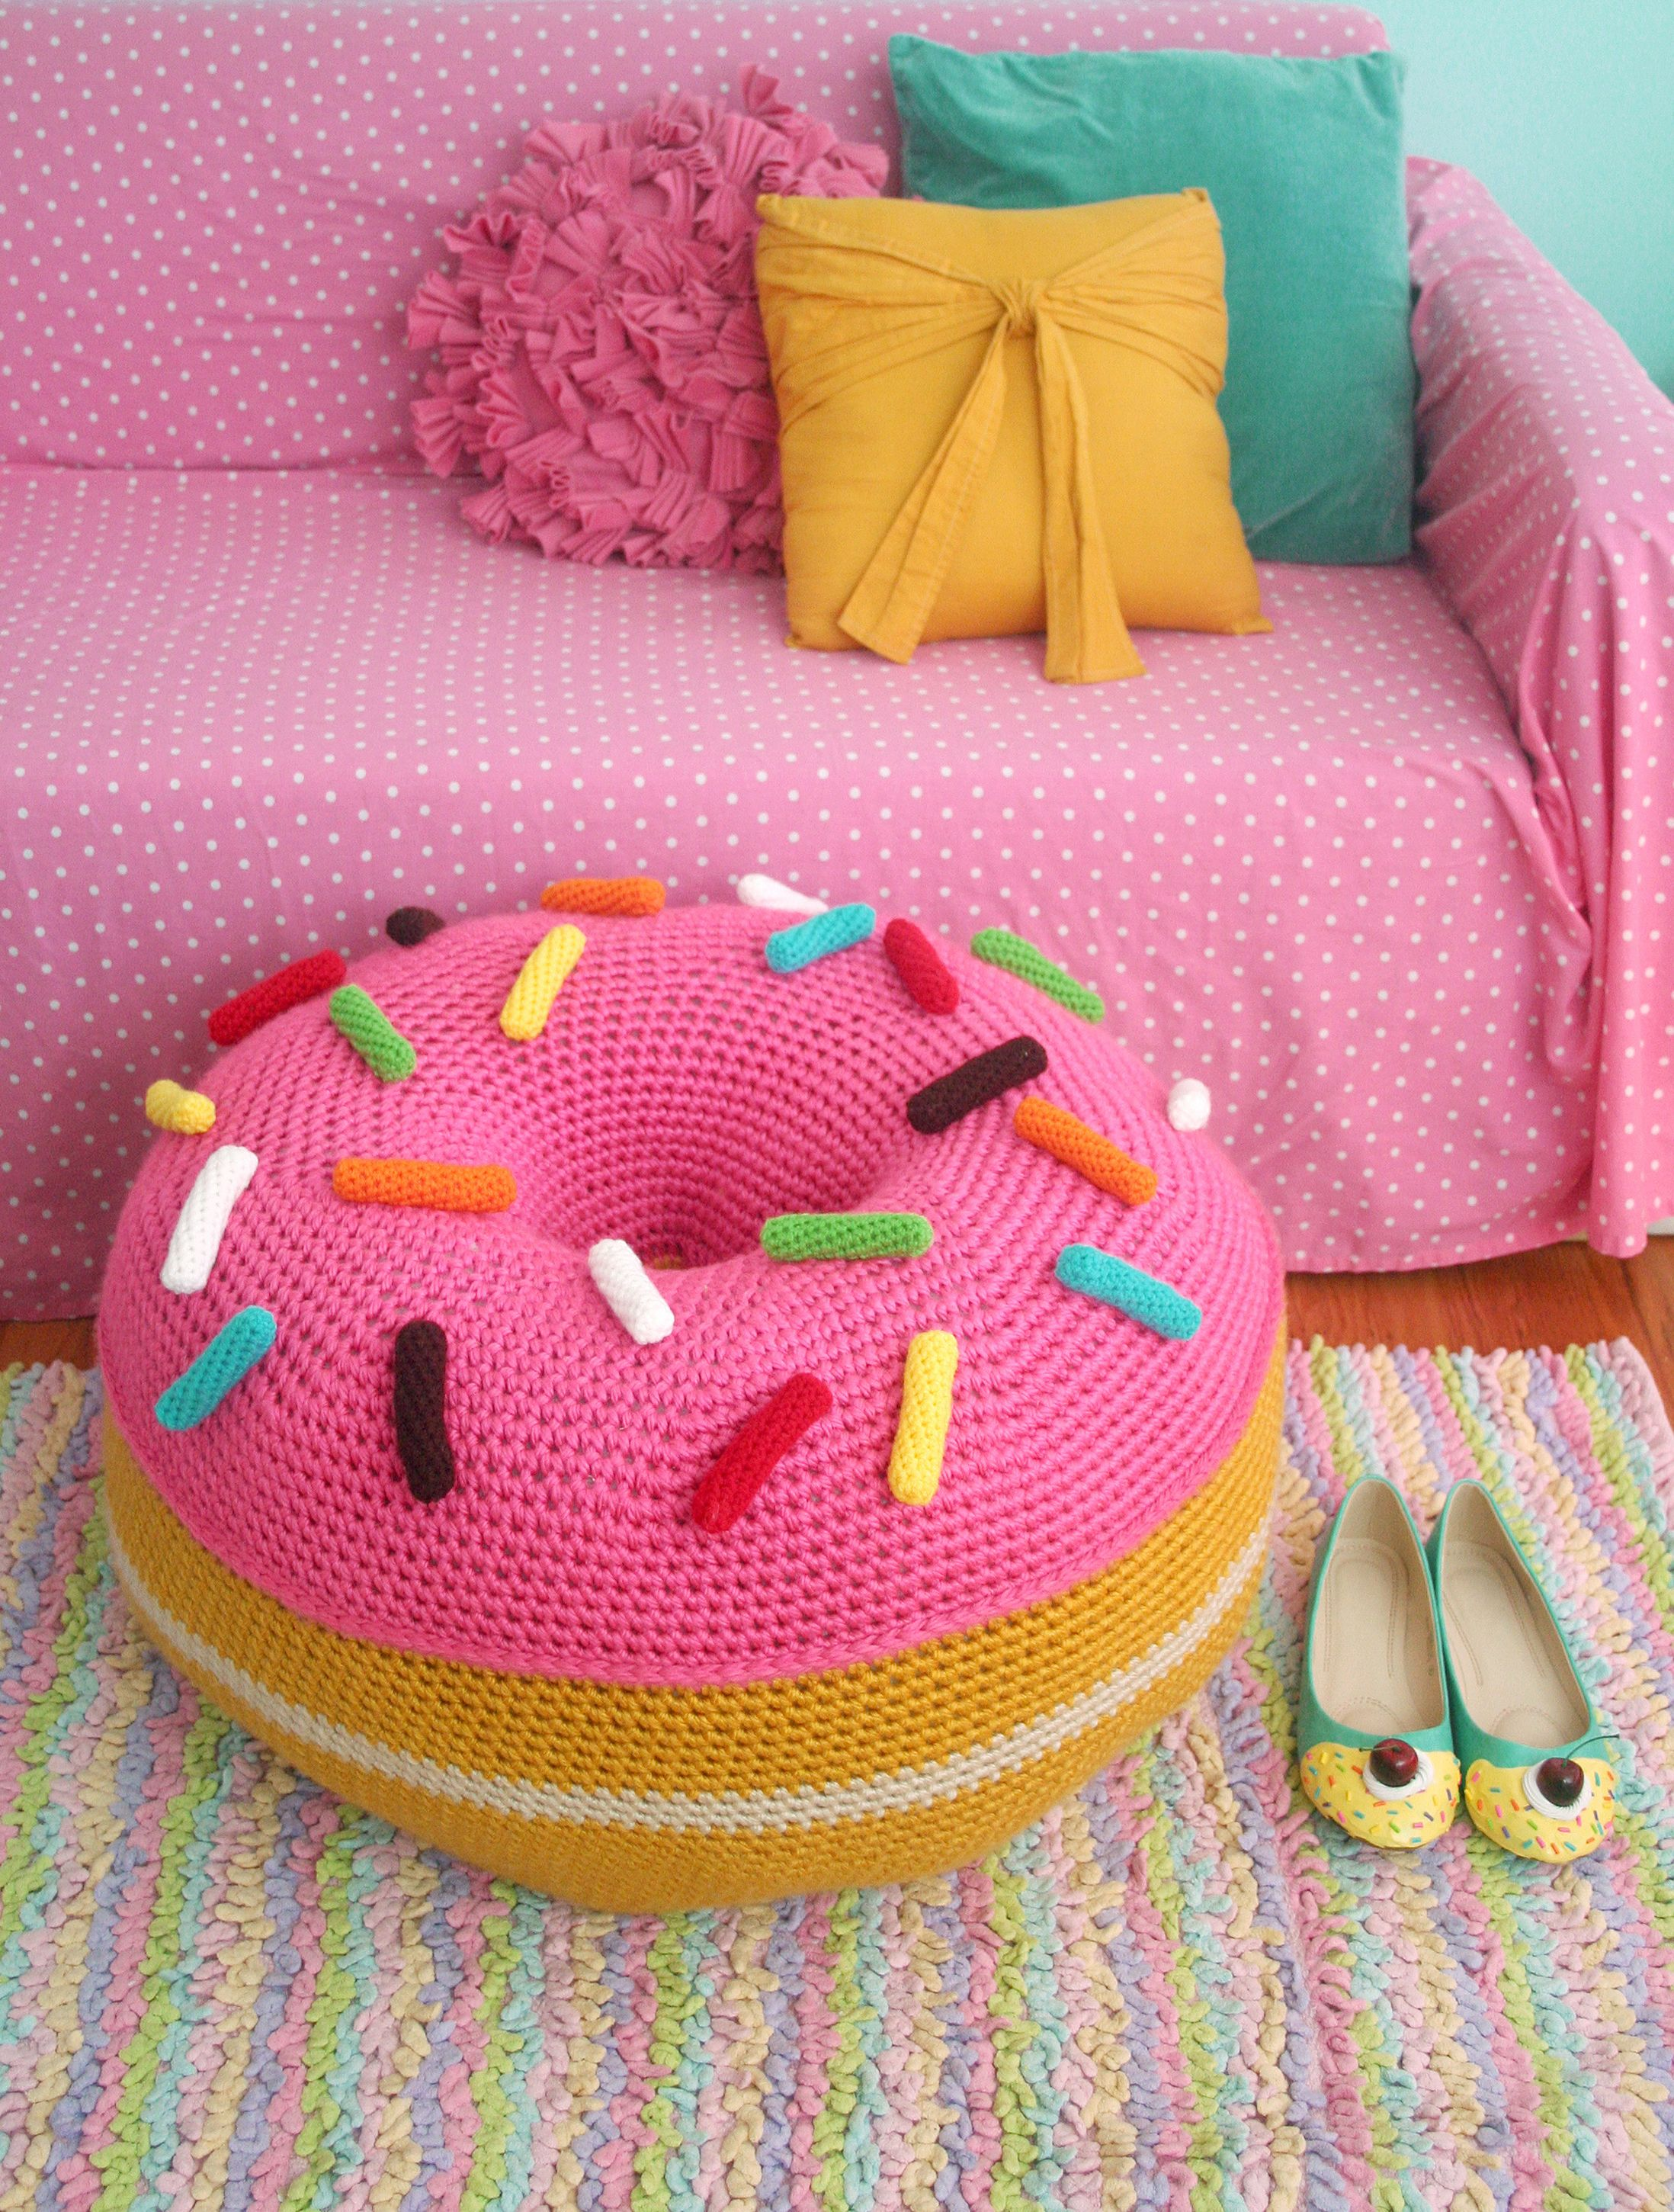 Sweet Donut Floor Cushion Taken From Issue 45 Just A